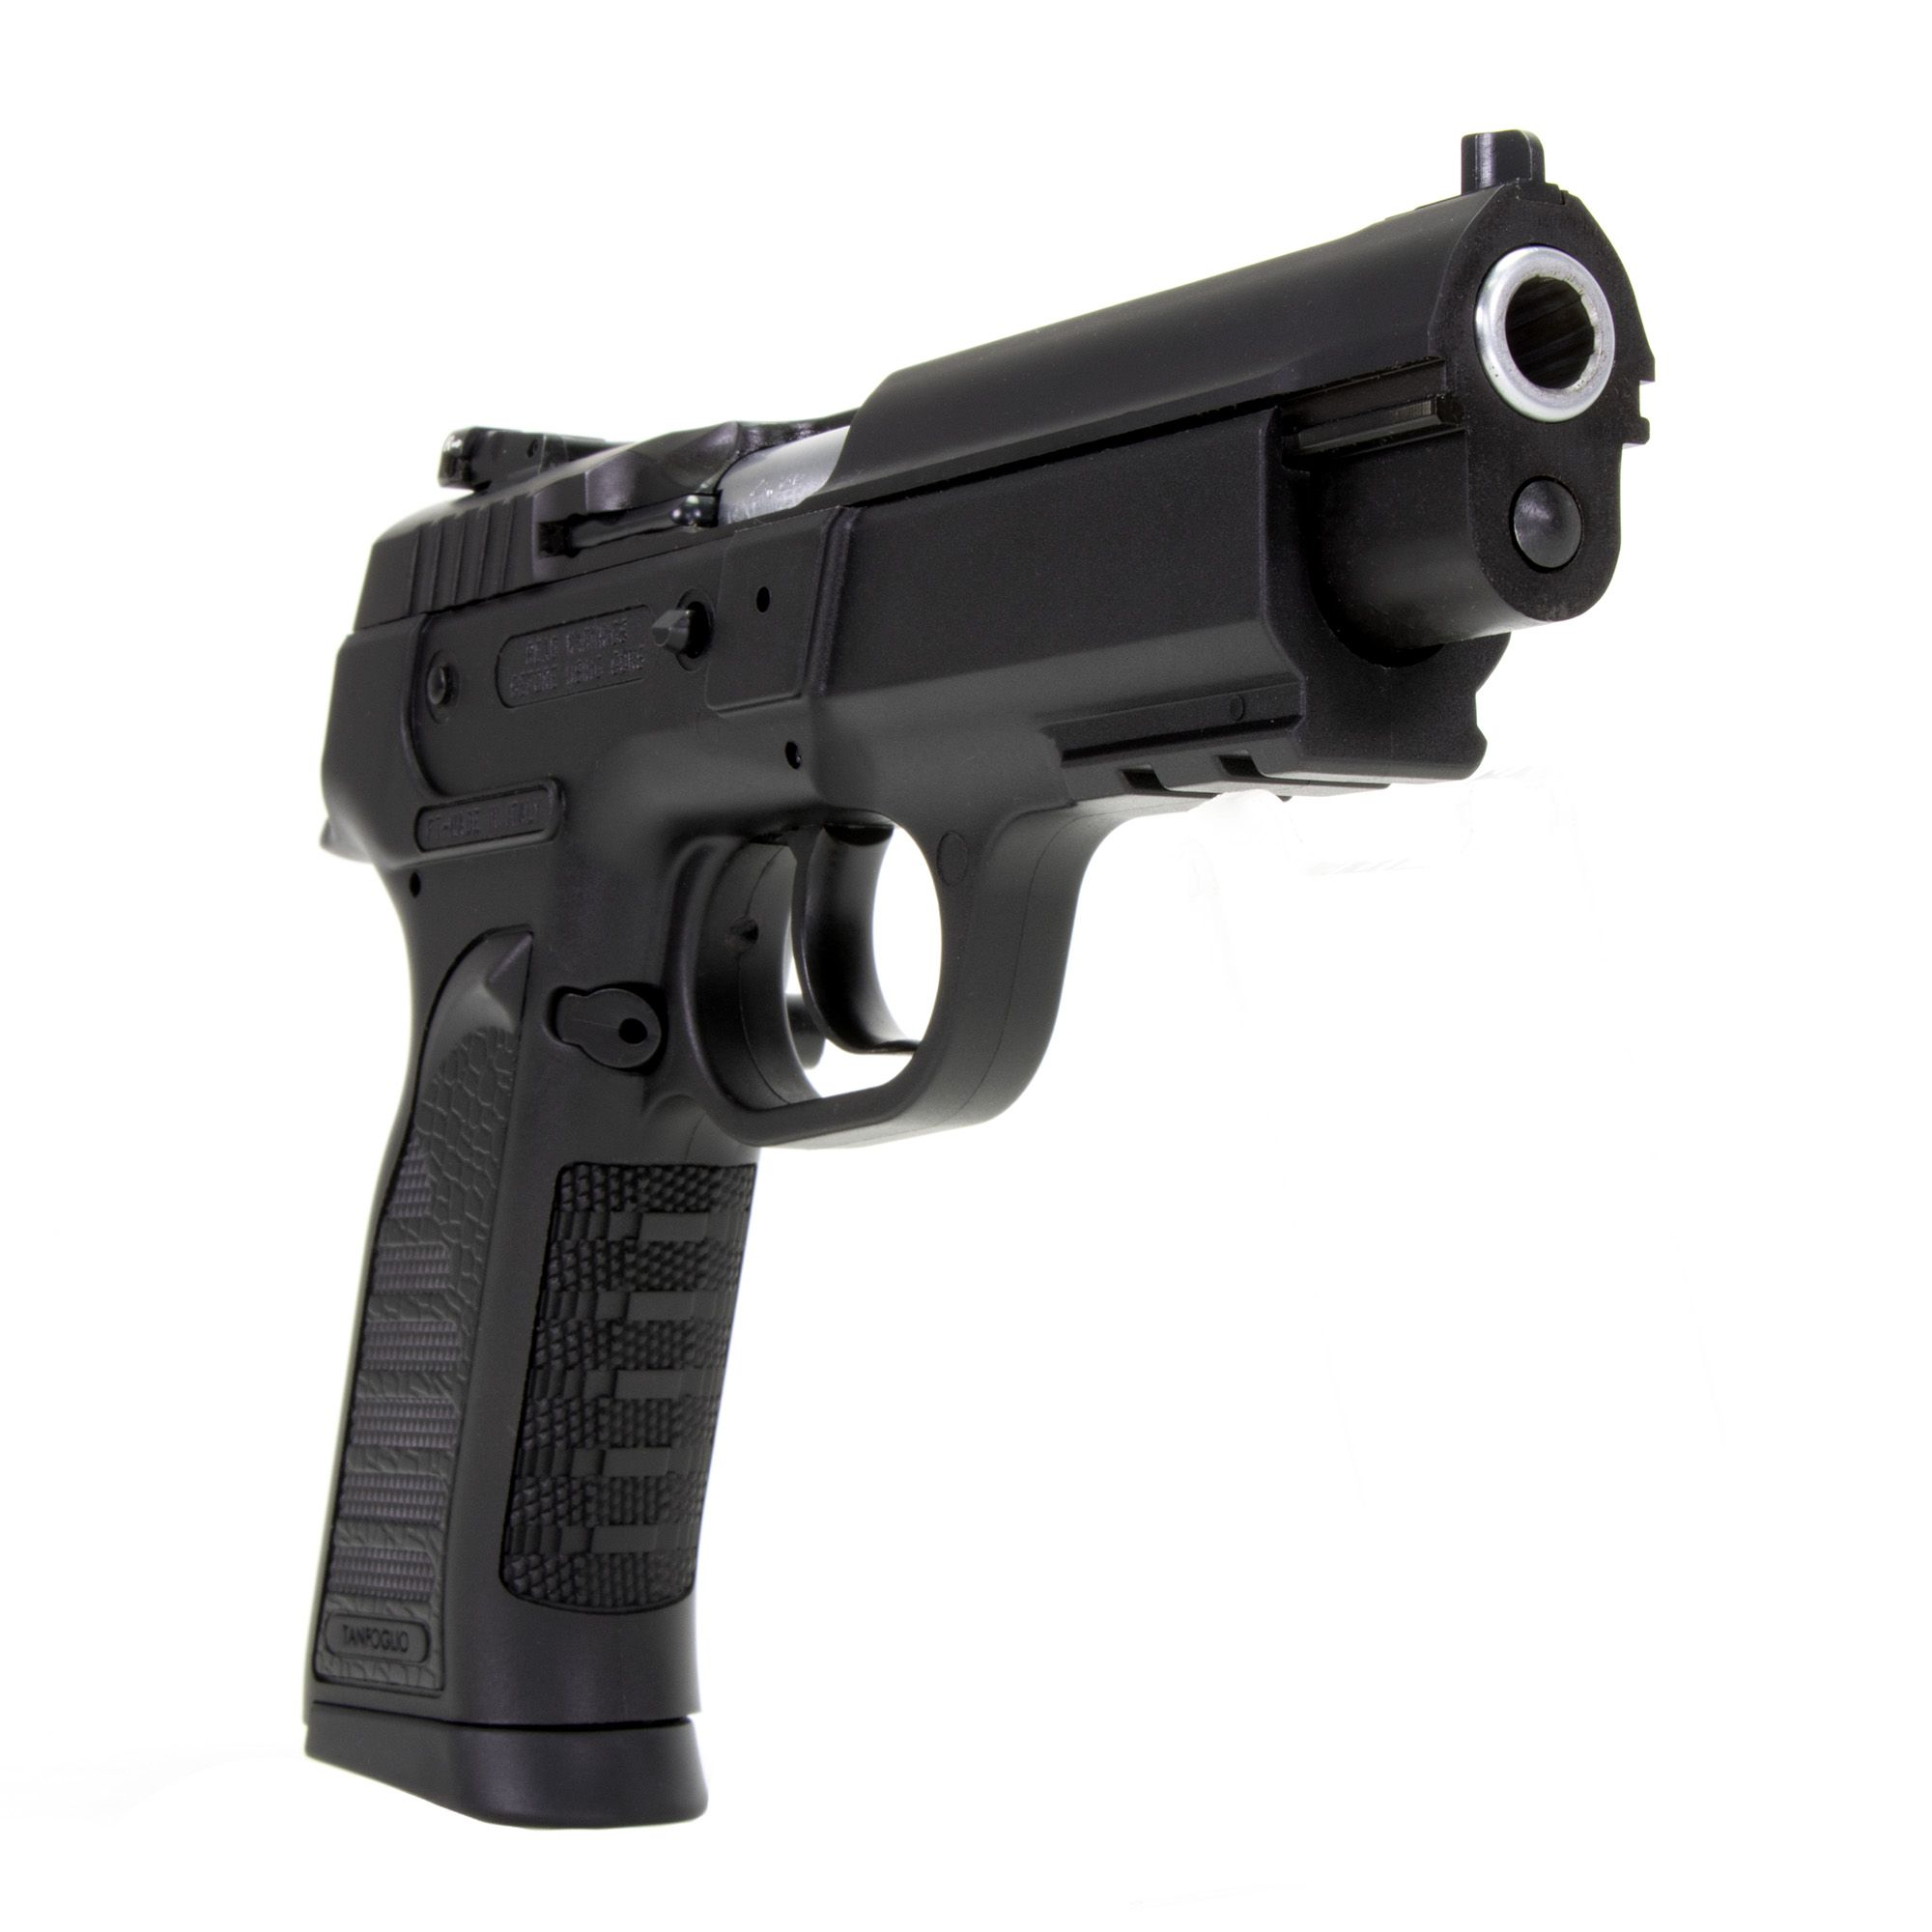 Pistola Tanfoglio FT9 FS (Full Size) Calibre 380 ACP - Venda Exclusiva Para CAC